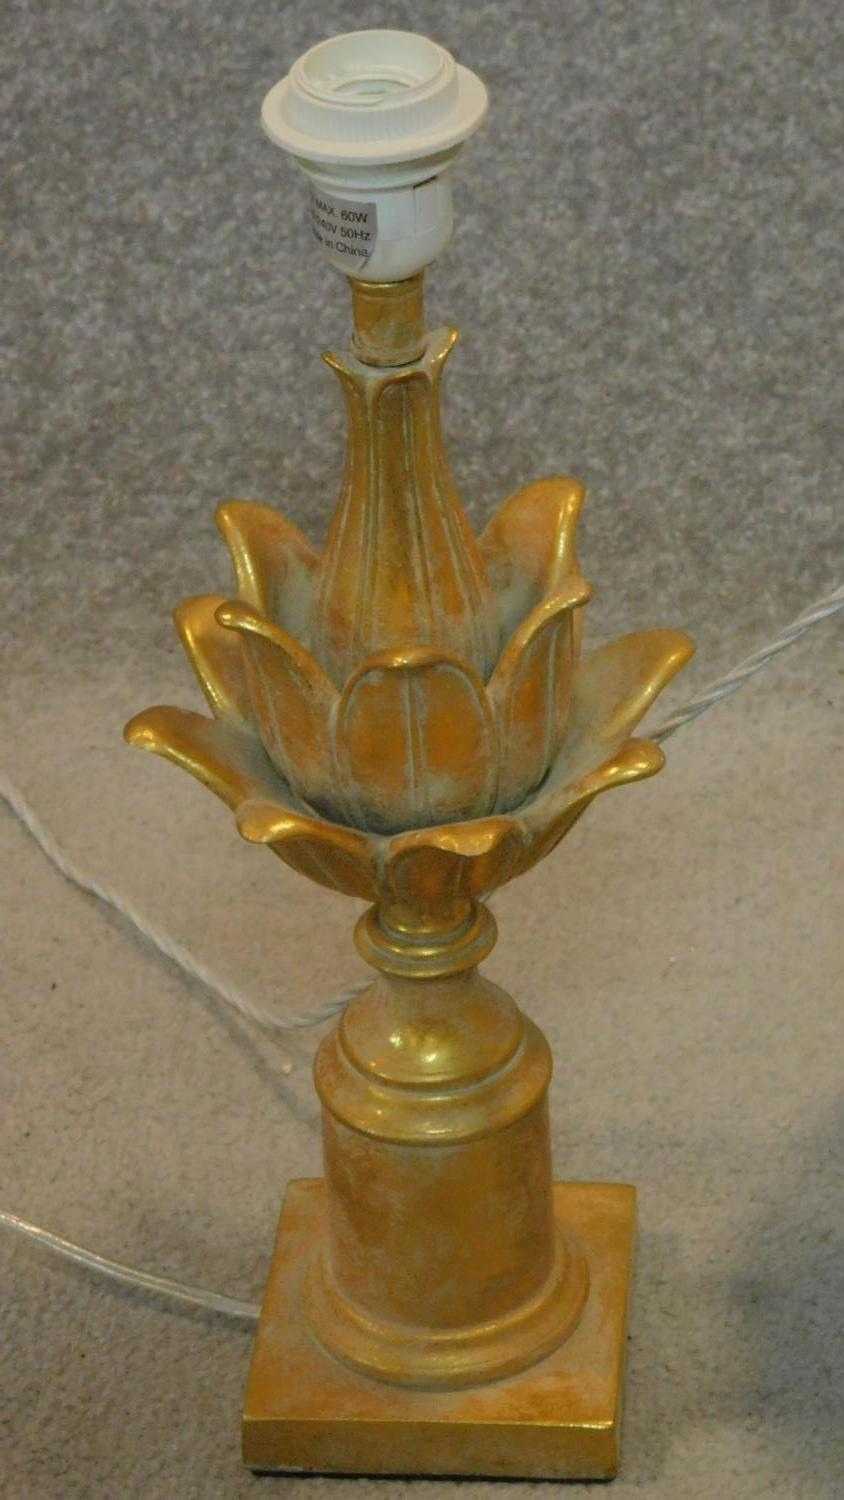 Lot 173 - A bulbous glass table lamp, a carved gilt acanthus shaped table lamp and a single rosebud